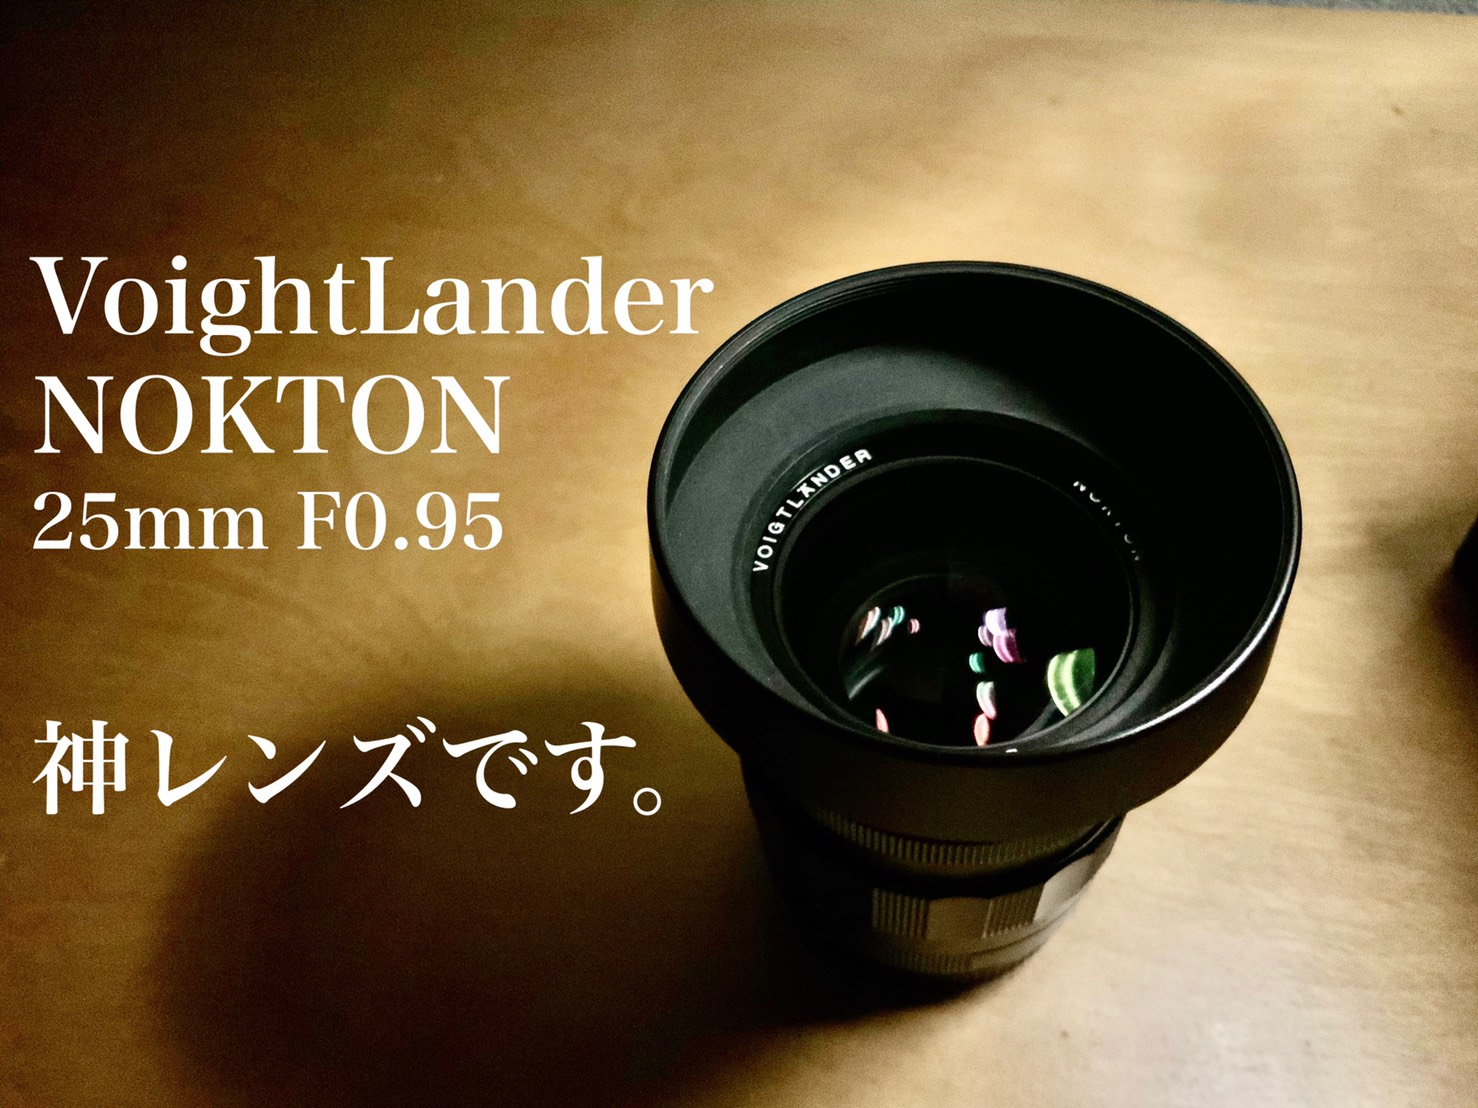 VoightLander NOKTON 25mm F0.95レンズ